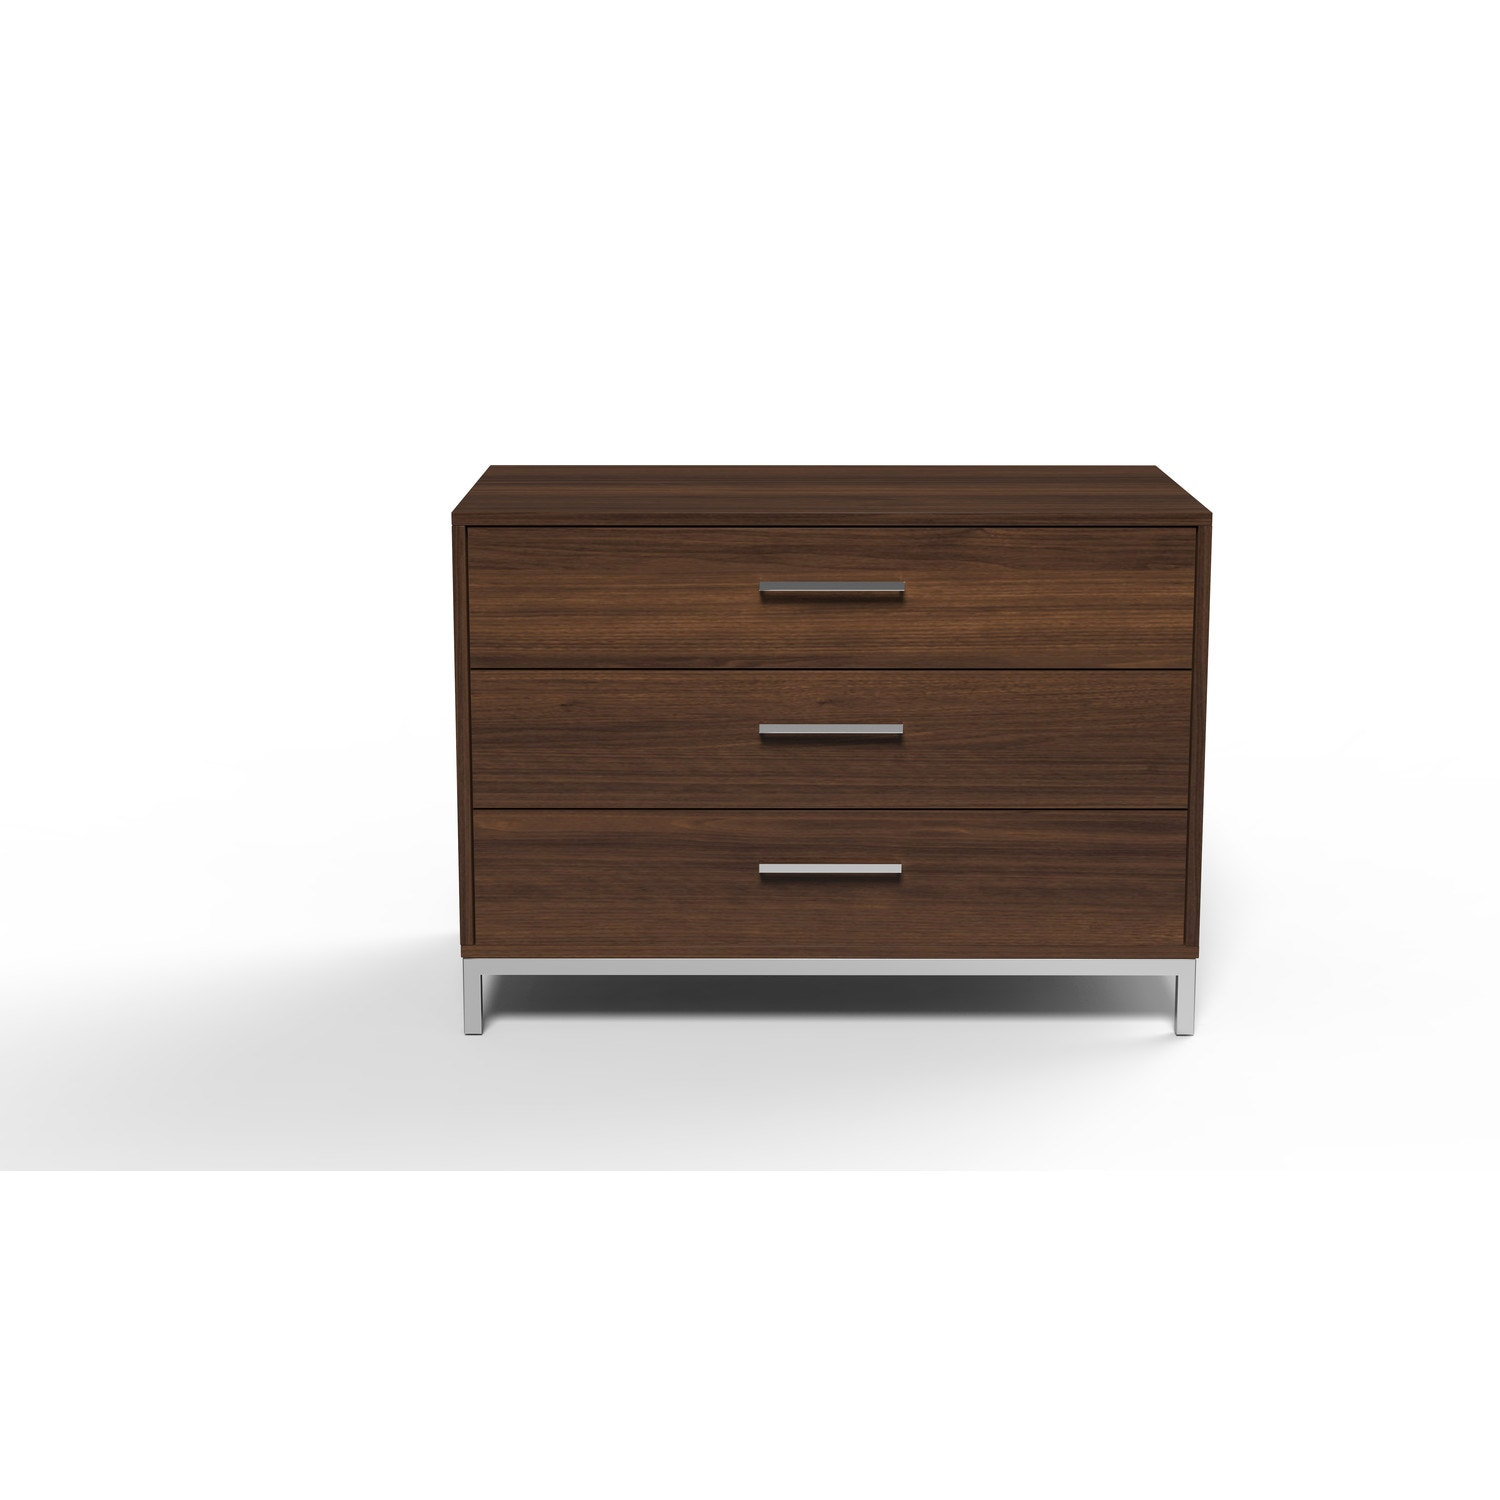 CHICAGO Dresser   3 Drawer   Dressers   Casegoods   Furniture   Furniture  Fixtures And Equipment   Open Catalog   American Hotel Site